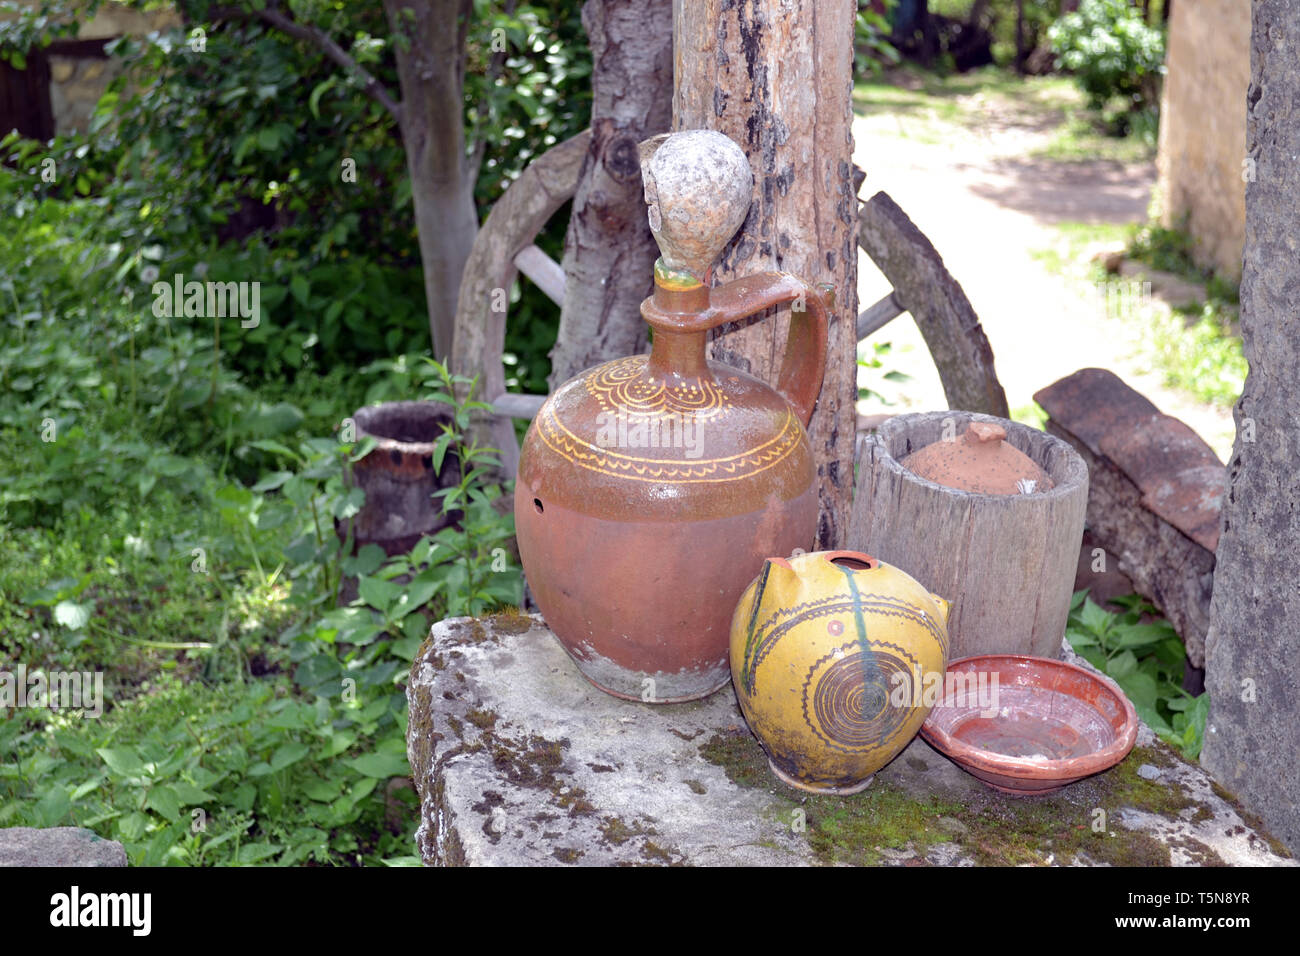 Antique clay pots used for storing food and drink - Stock Image